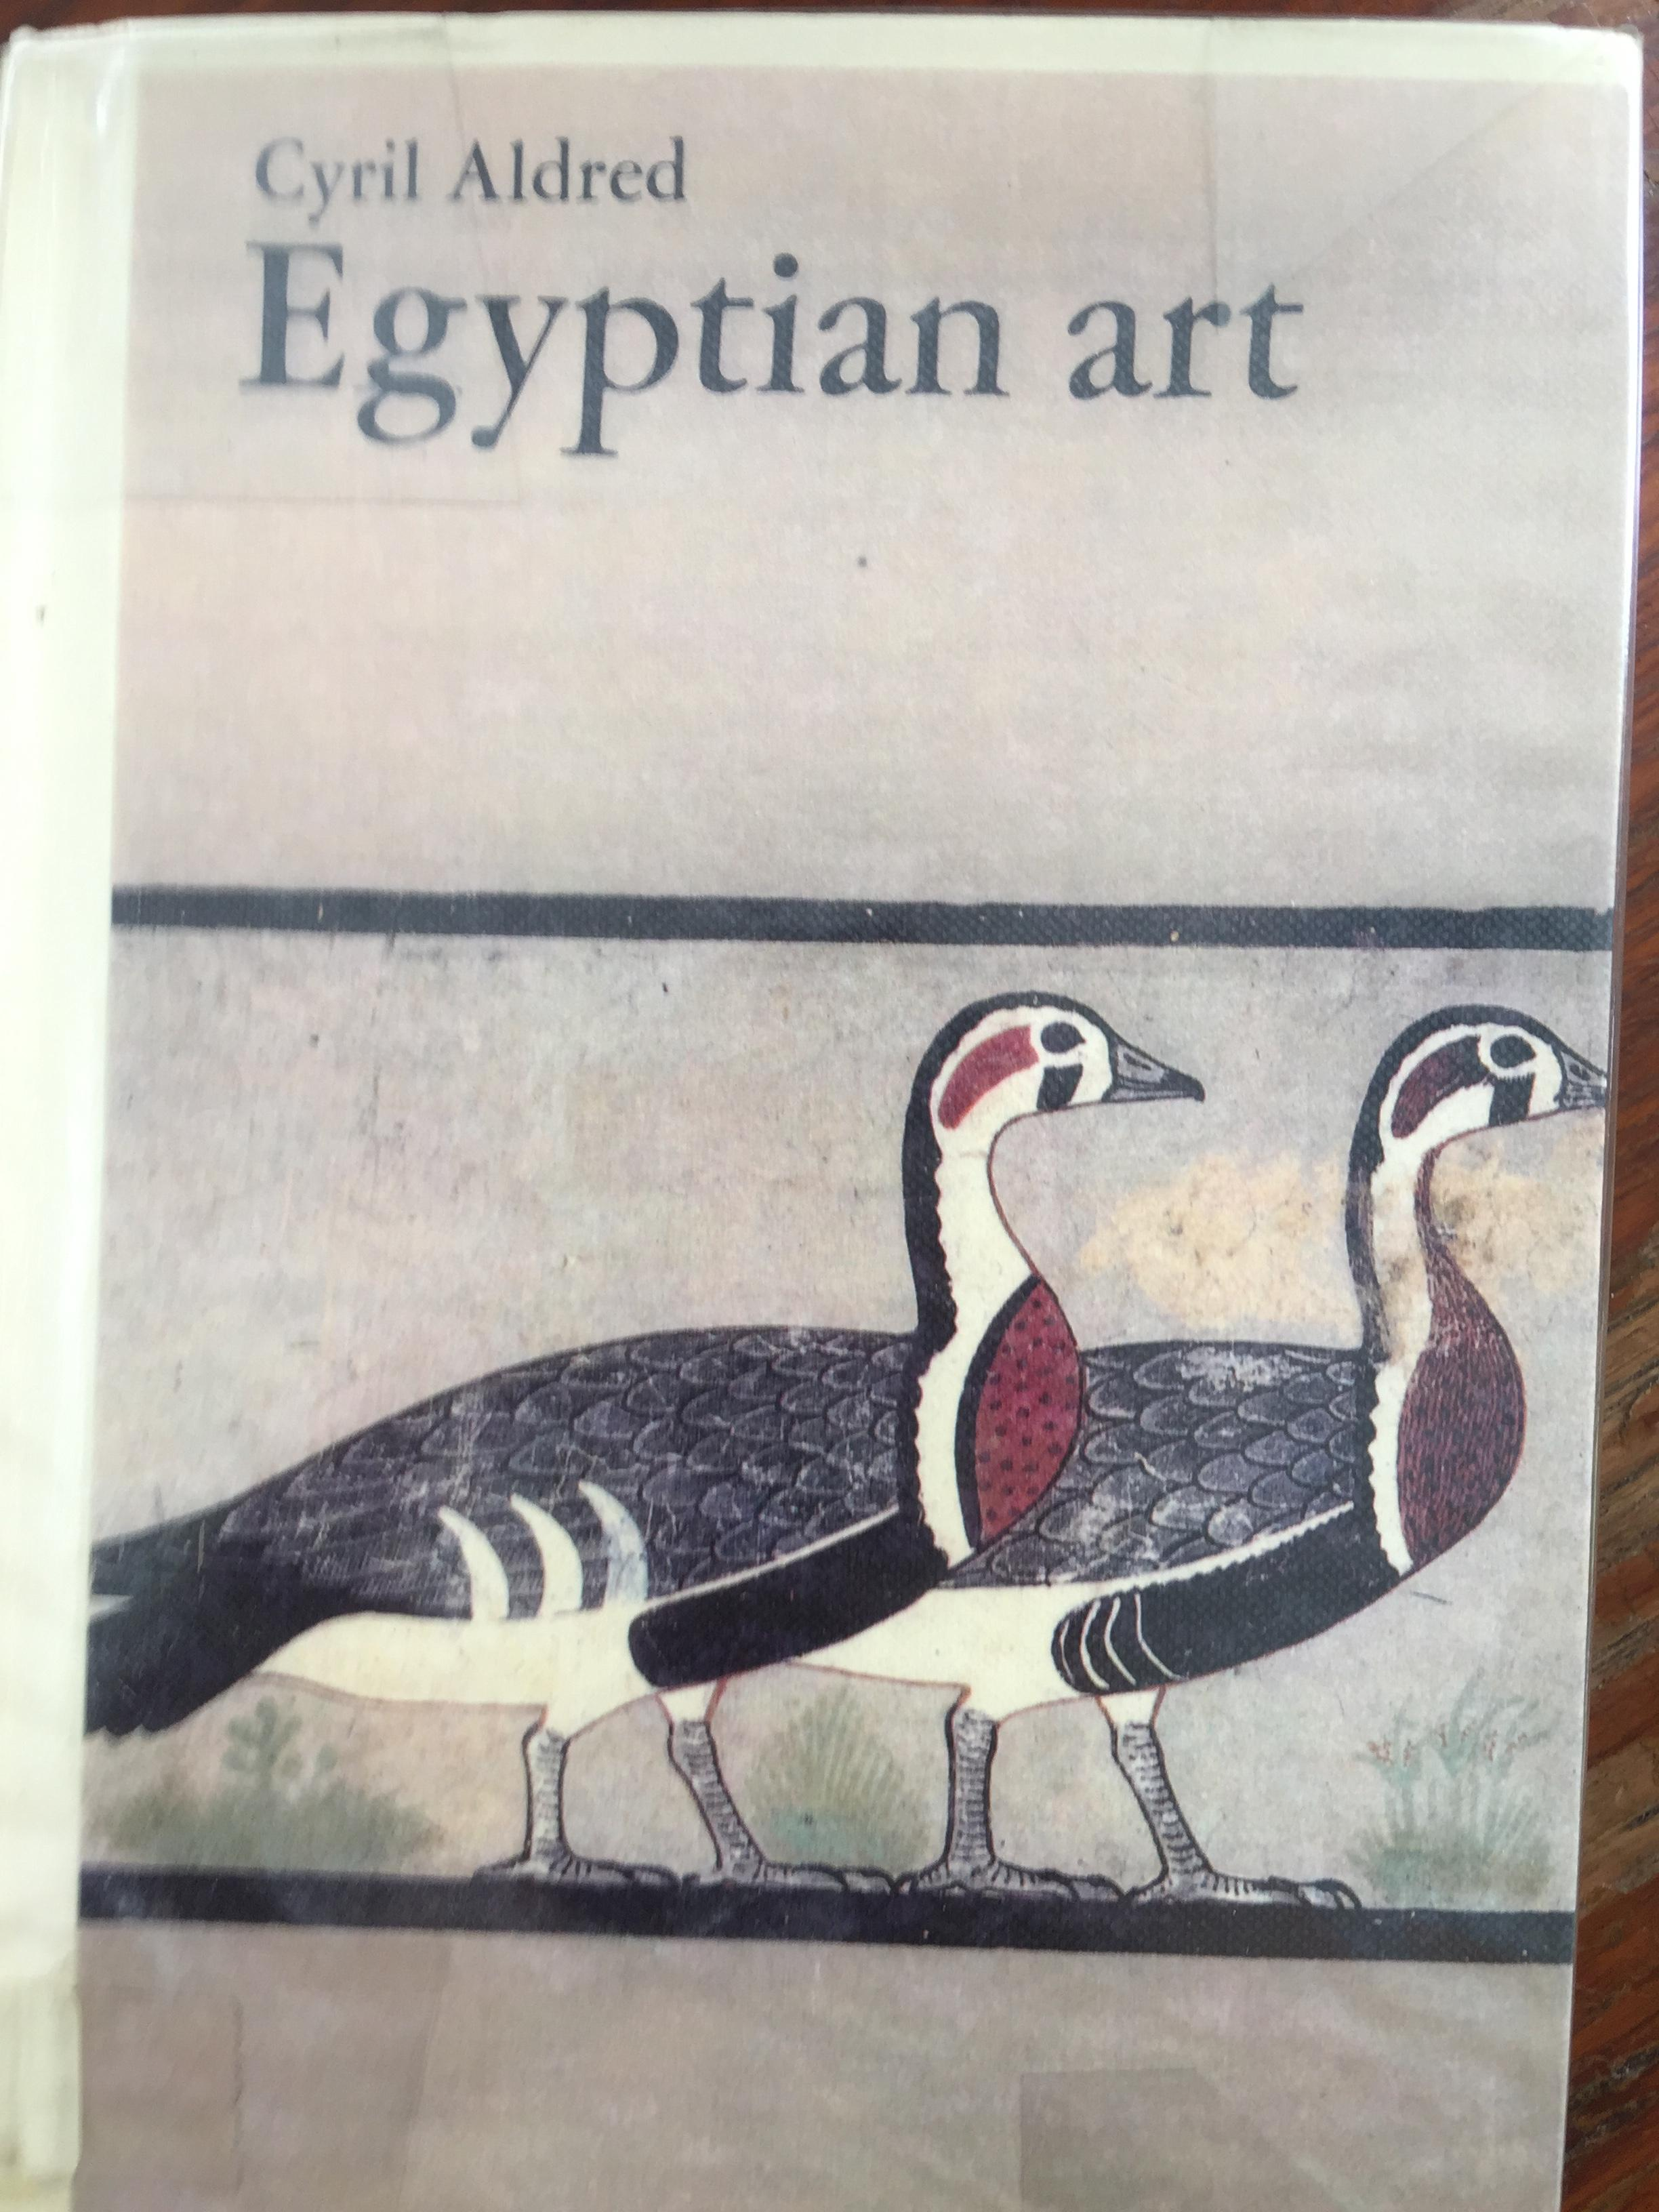 EGYPTIAN ART. ผู้เขียน Cyril Aldred.